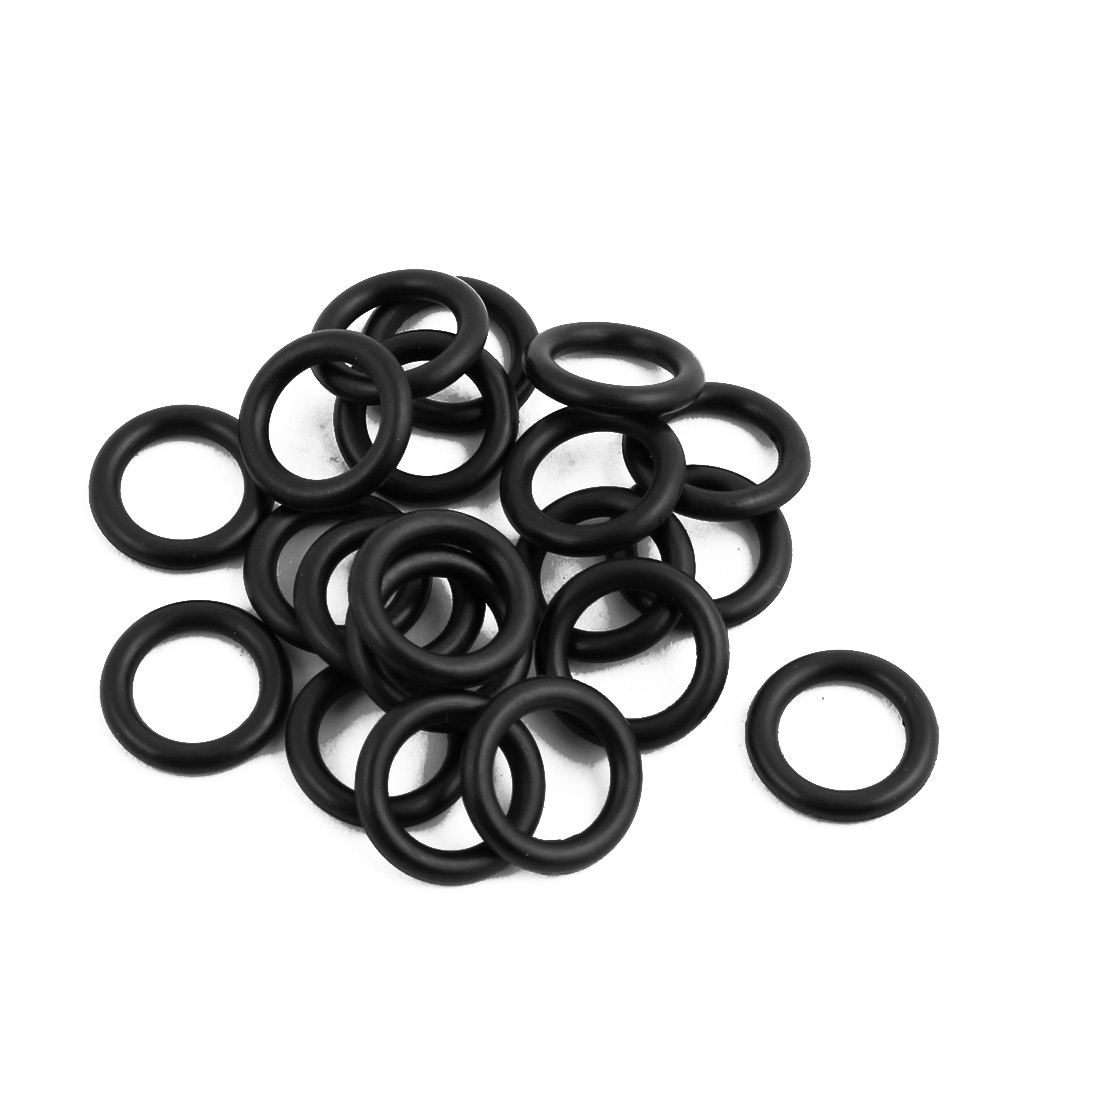 20Pcs Black 12mm Dia 2mm Thickness Nitrile Rubber O Ring NBR Sealing Grommets